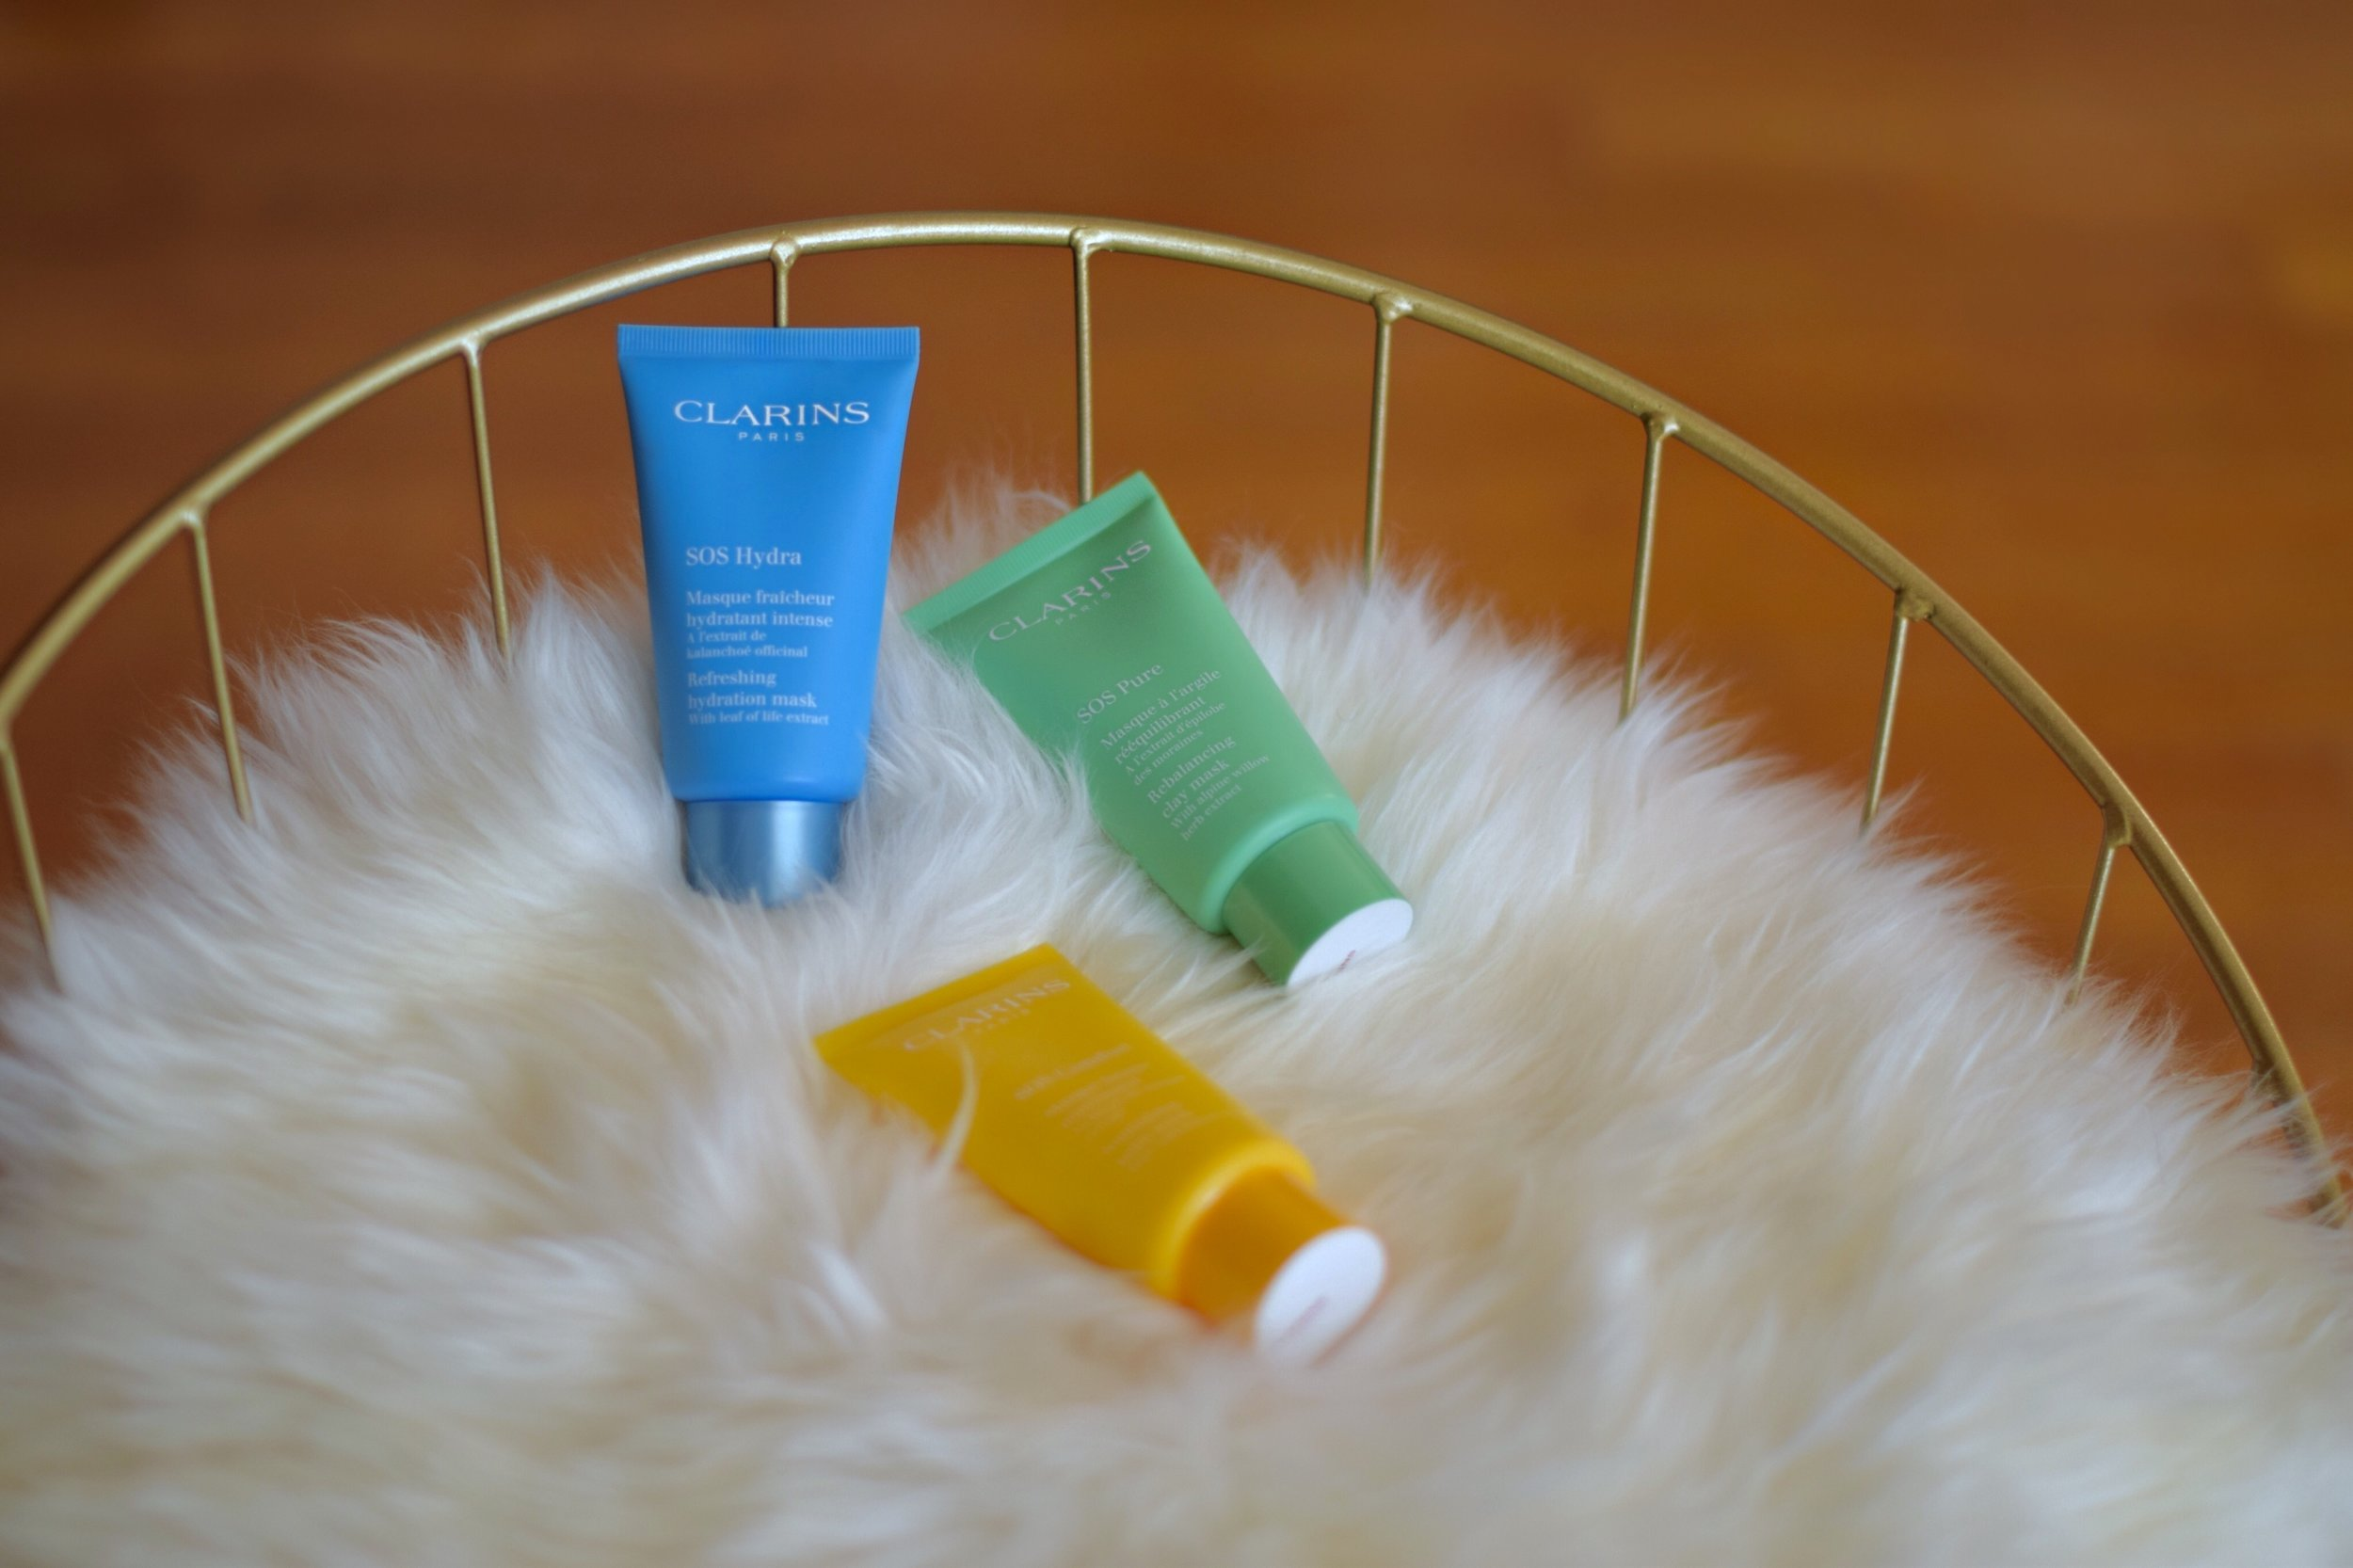 SOS Face Masks Clarins Esther Santer Fashion Blog NYC Street Style Blogger Outfit OOTD Trendy Beauty Product Review Colorful Blue Green Yellow Bottle Moisturize Masque Rebalancing Shop Skincare Skin Routine Comfort Girl Women New York City  Hydrate.jpg